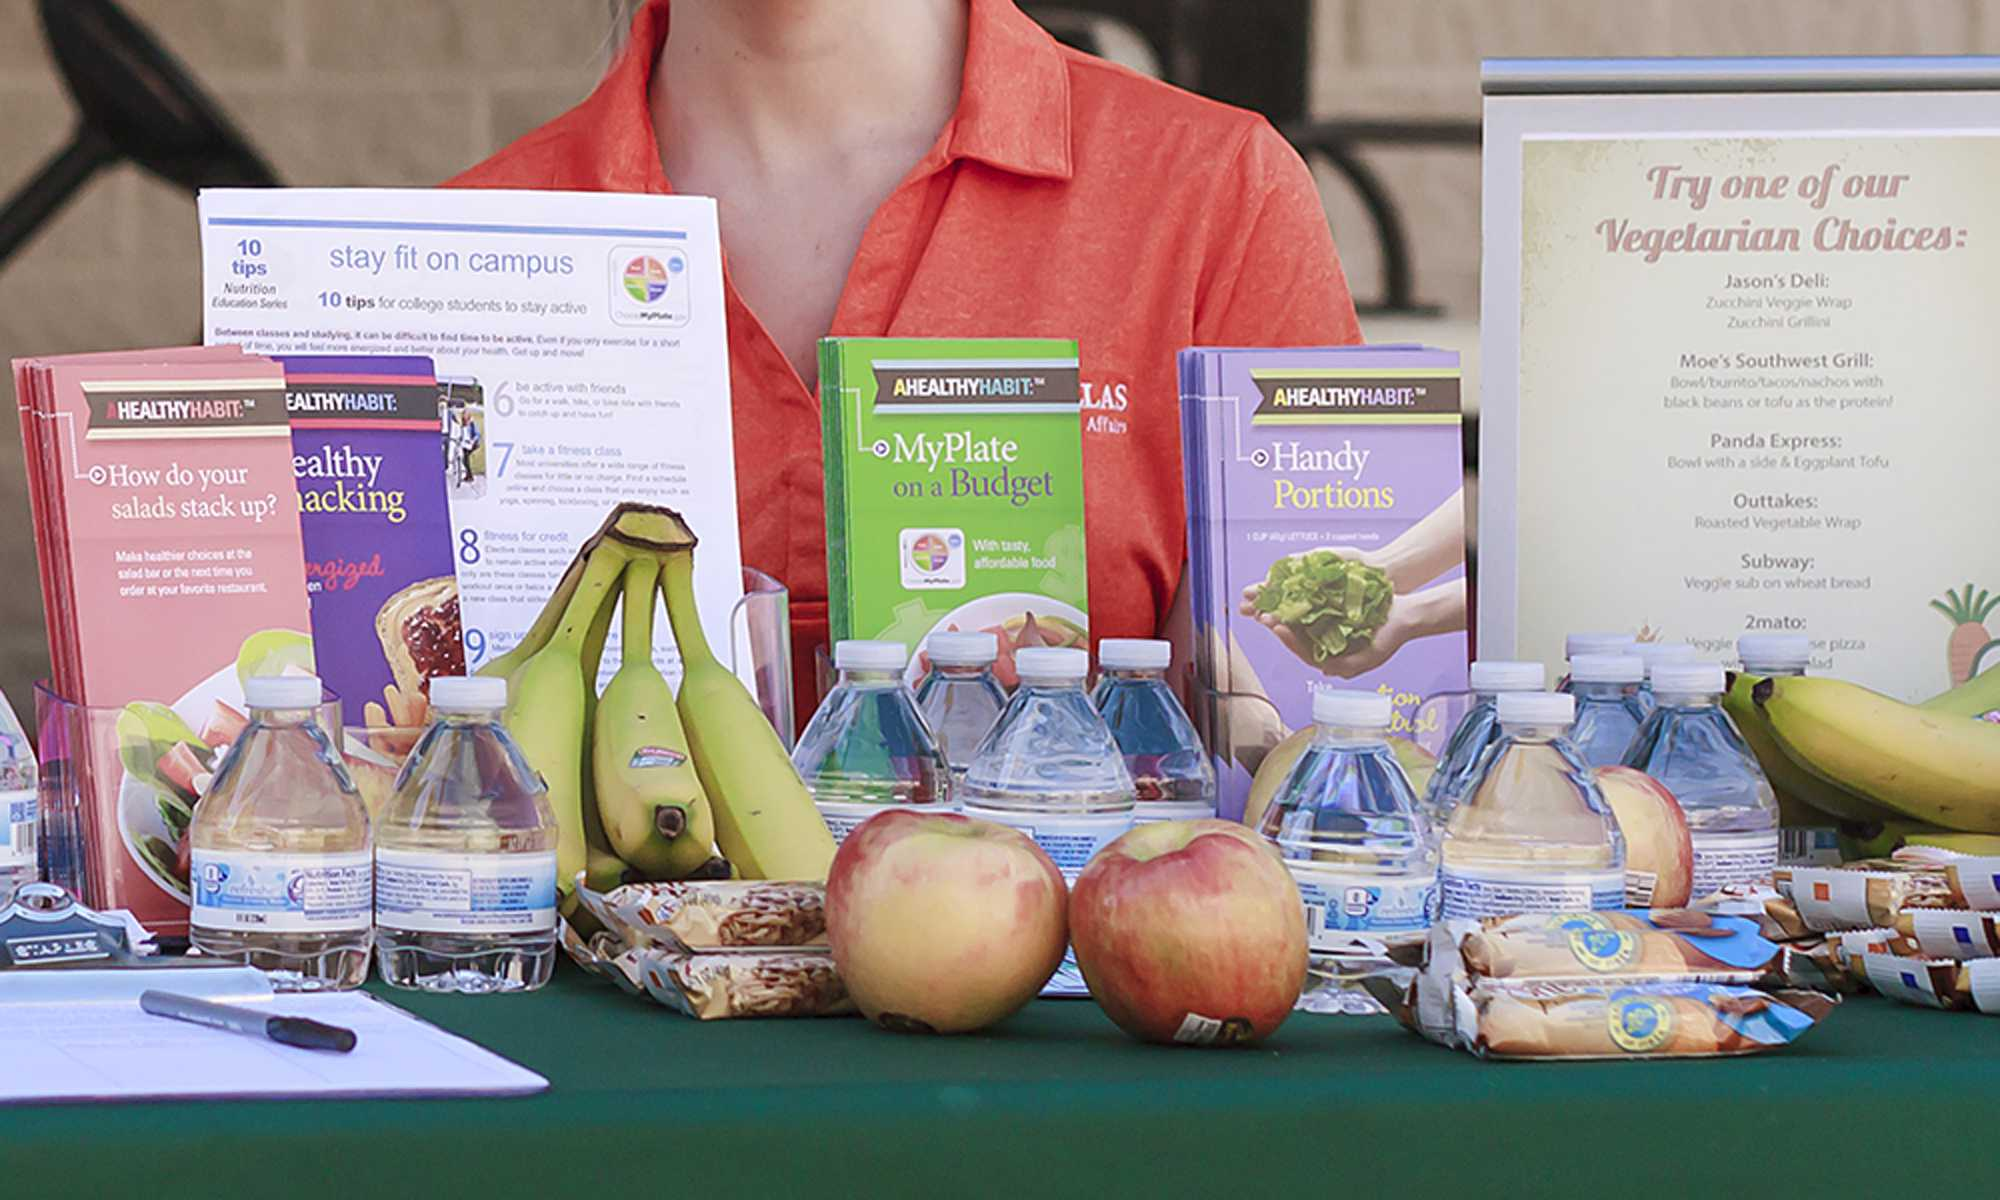 Photo of nutritional information brochures